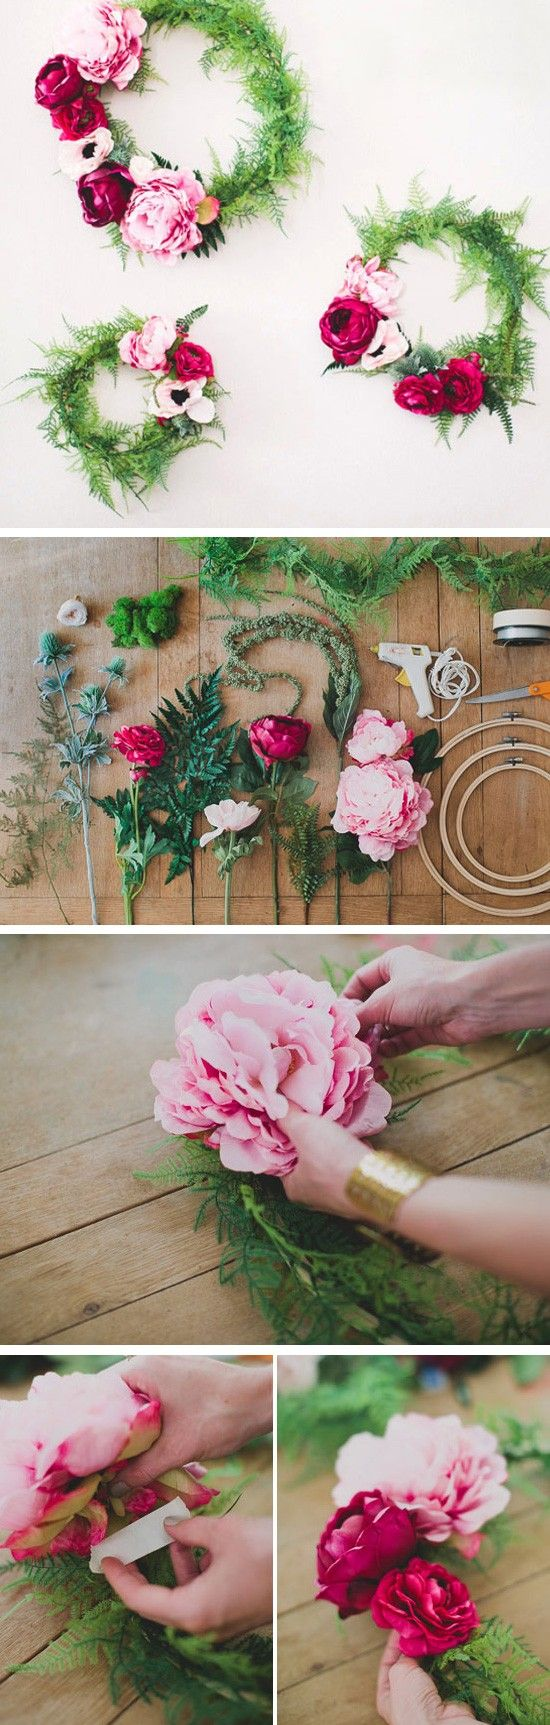 24 Diy Spring Wedding Ideas On A Budget Silk Flower Wreaths Diy